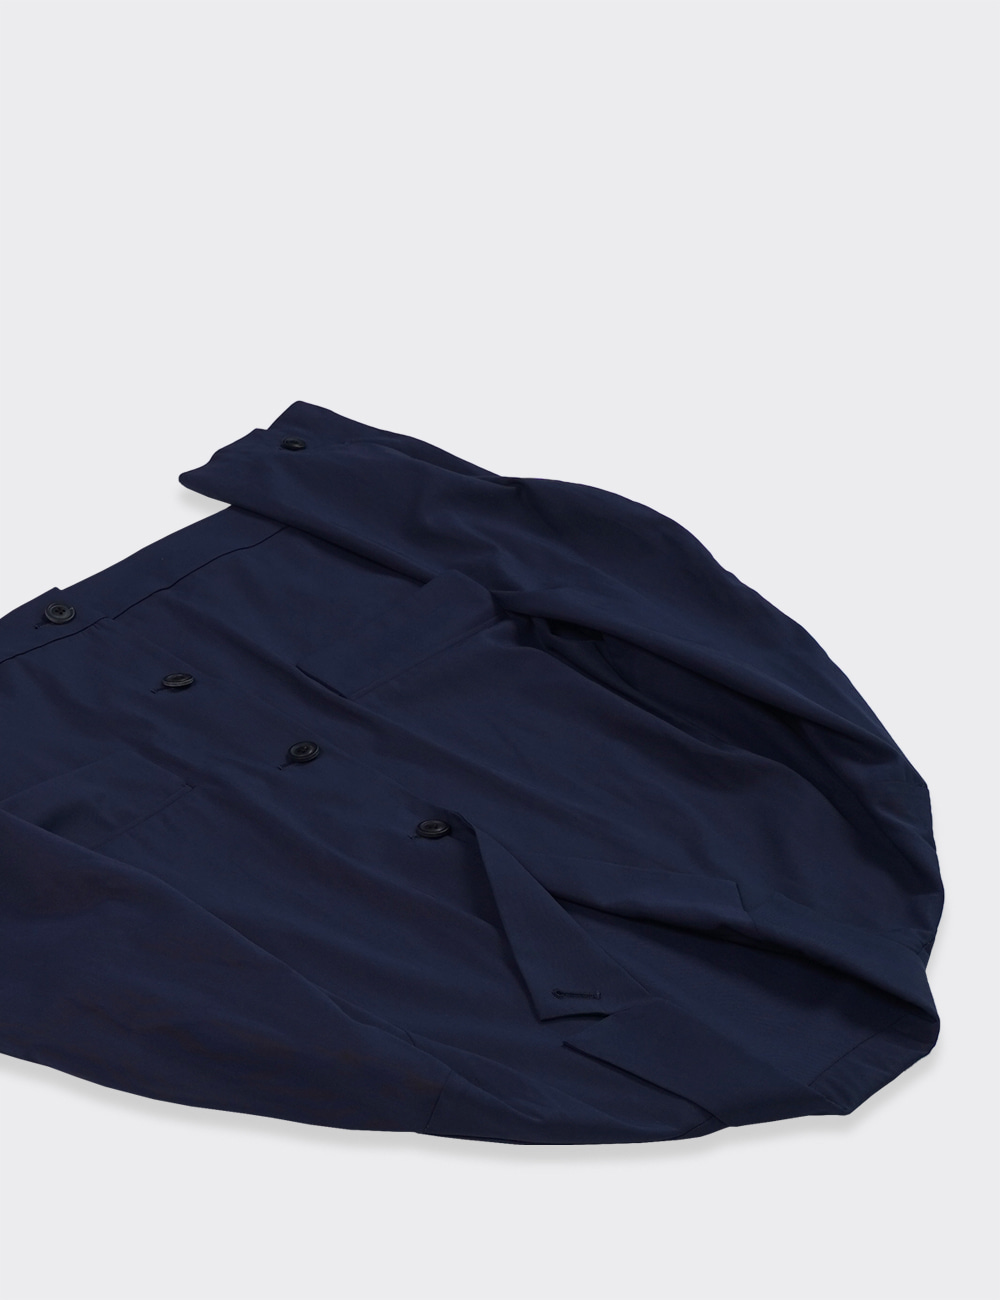 URU : COTTON SHORT JACKET (NAVY)